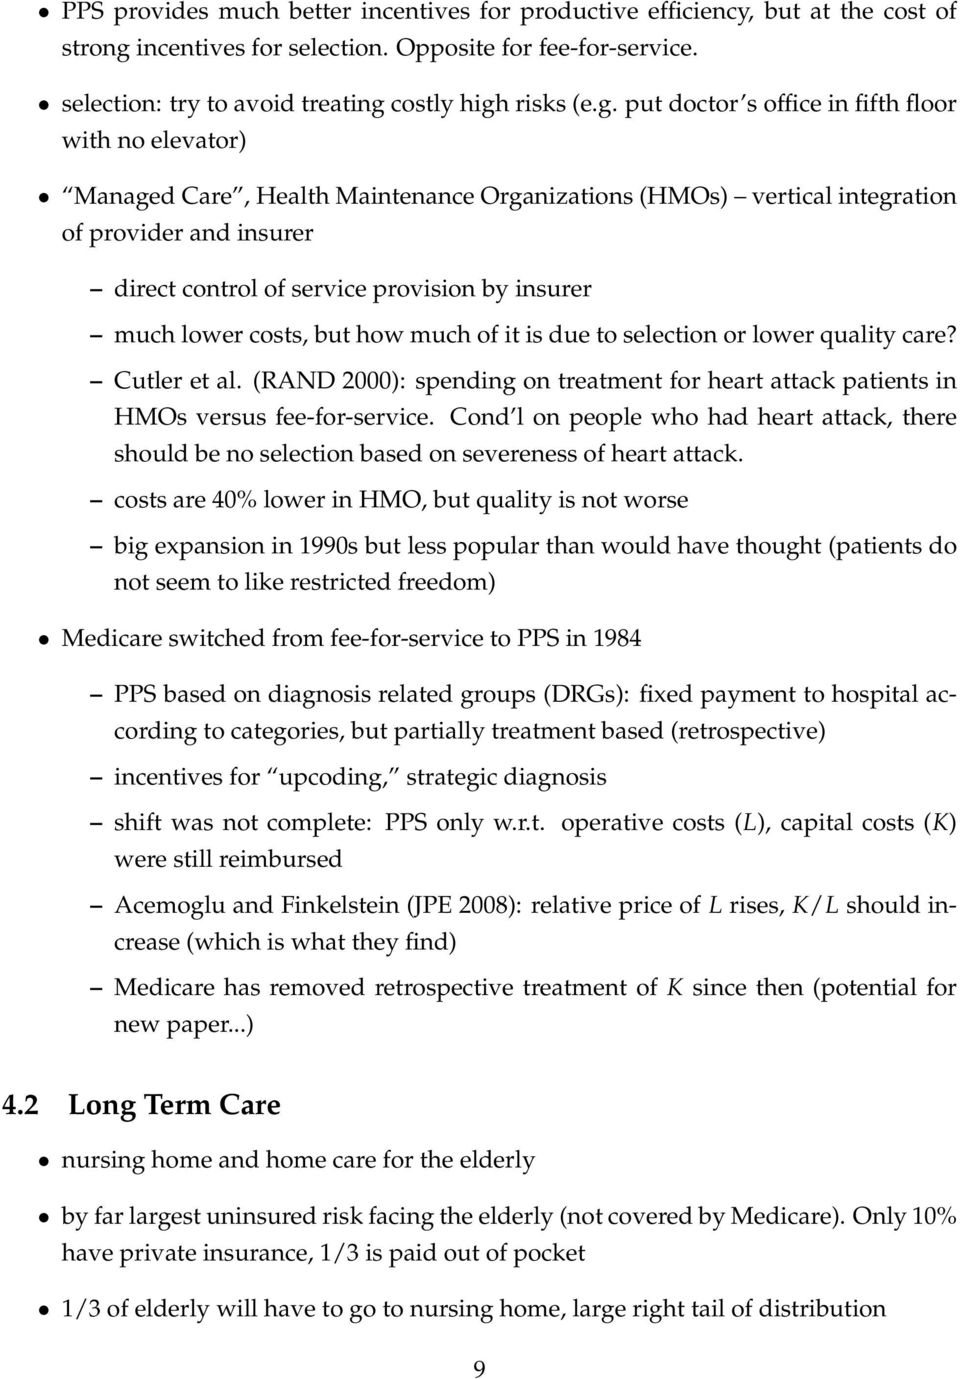 insurer much lower costs, but how much of it is due to selection or lower quality care? Cutler et al. (RAND 2000): spending on treatment for heart attack patients in HMOs versus fee-for-service.